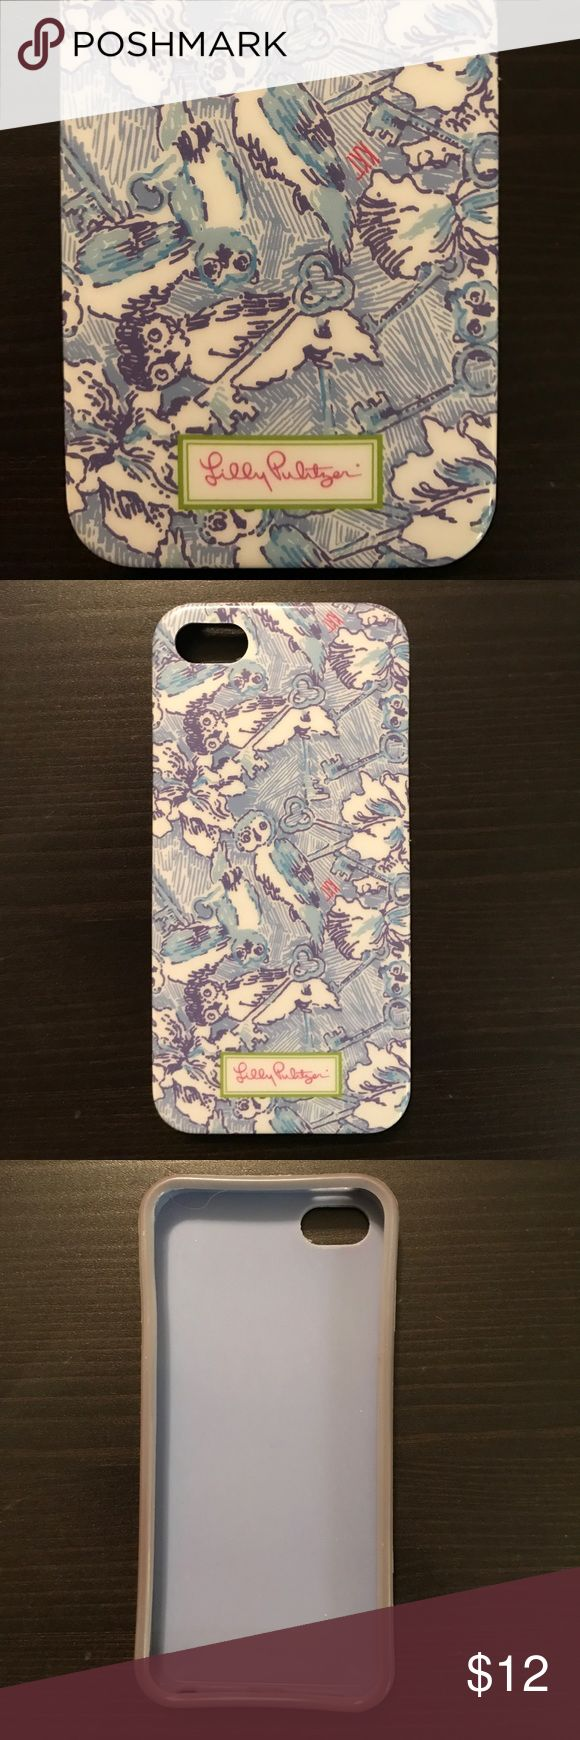 KKG Lilly Pulitzer 5S phone case Lilly Pulitzer Kappa Kappa Gamma phone case covered in light/dark blue owls and keys with small KKG lettering! Bumper edge to avoid cracked screens! Fits iPhone 5S 🔑🗝💙 Lilly Pulitzer Accessories Phone Cases